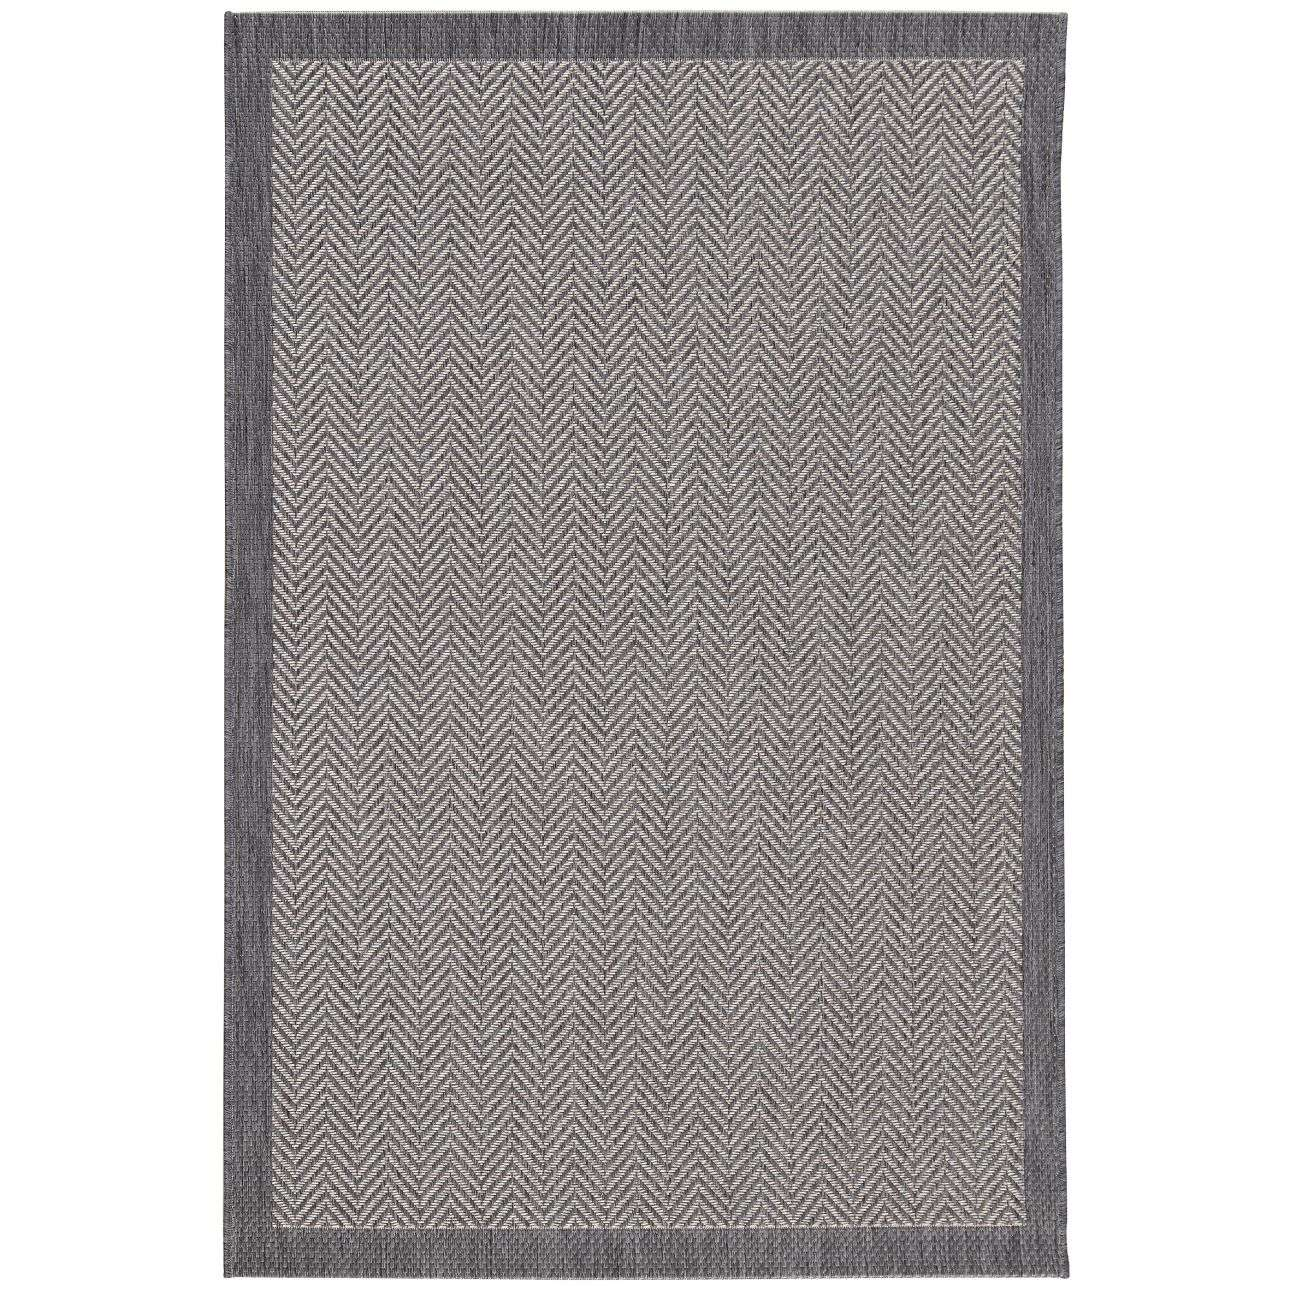 Breeze Cliff Grey Area Rug 200x290cm